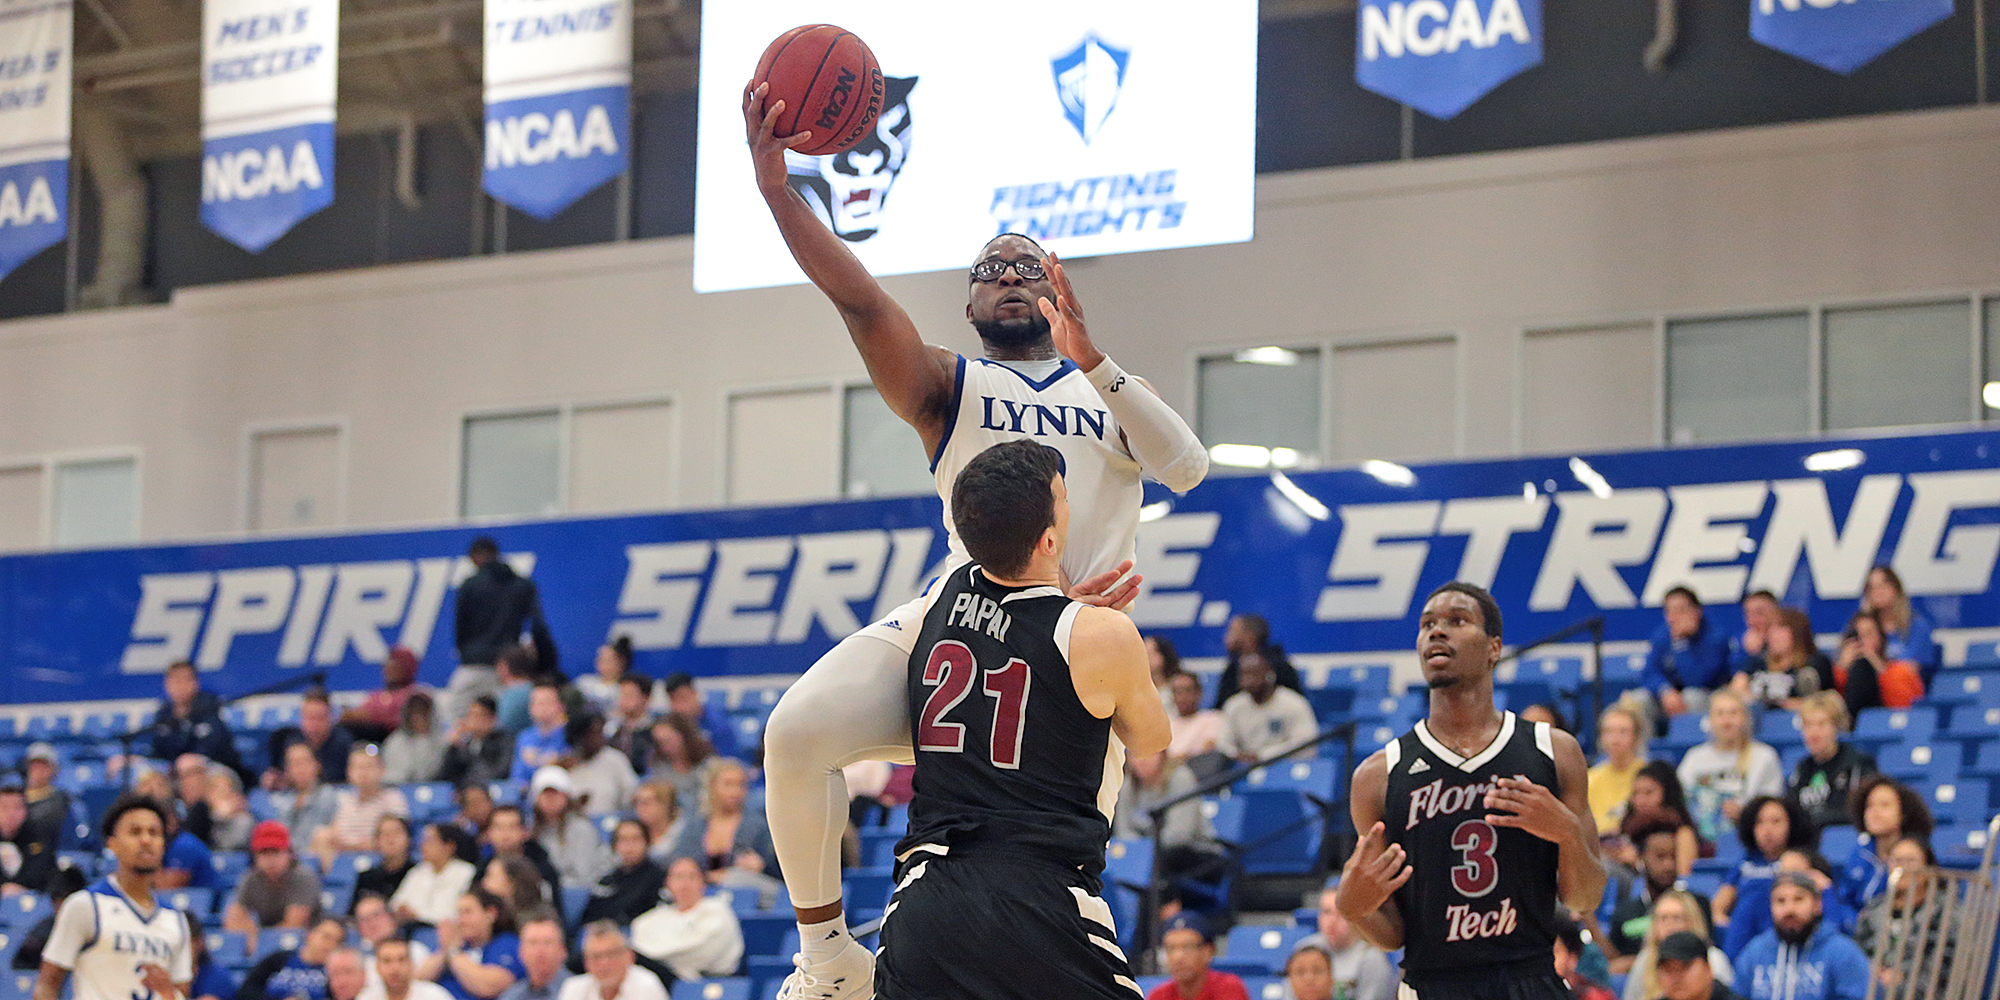 Men's Basketball's Second-Half Surge Puts Florida Tech to Sleep